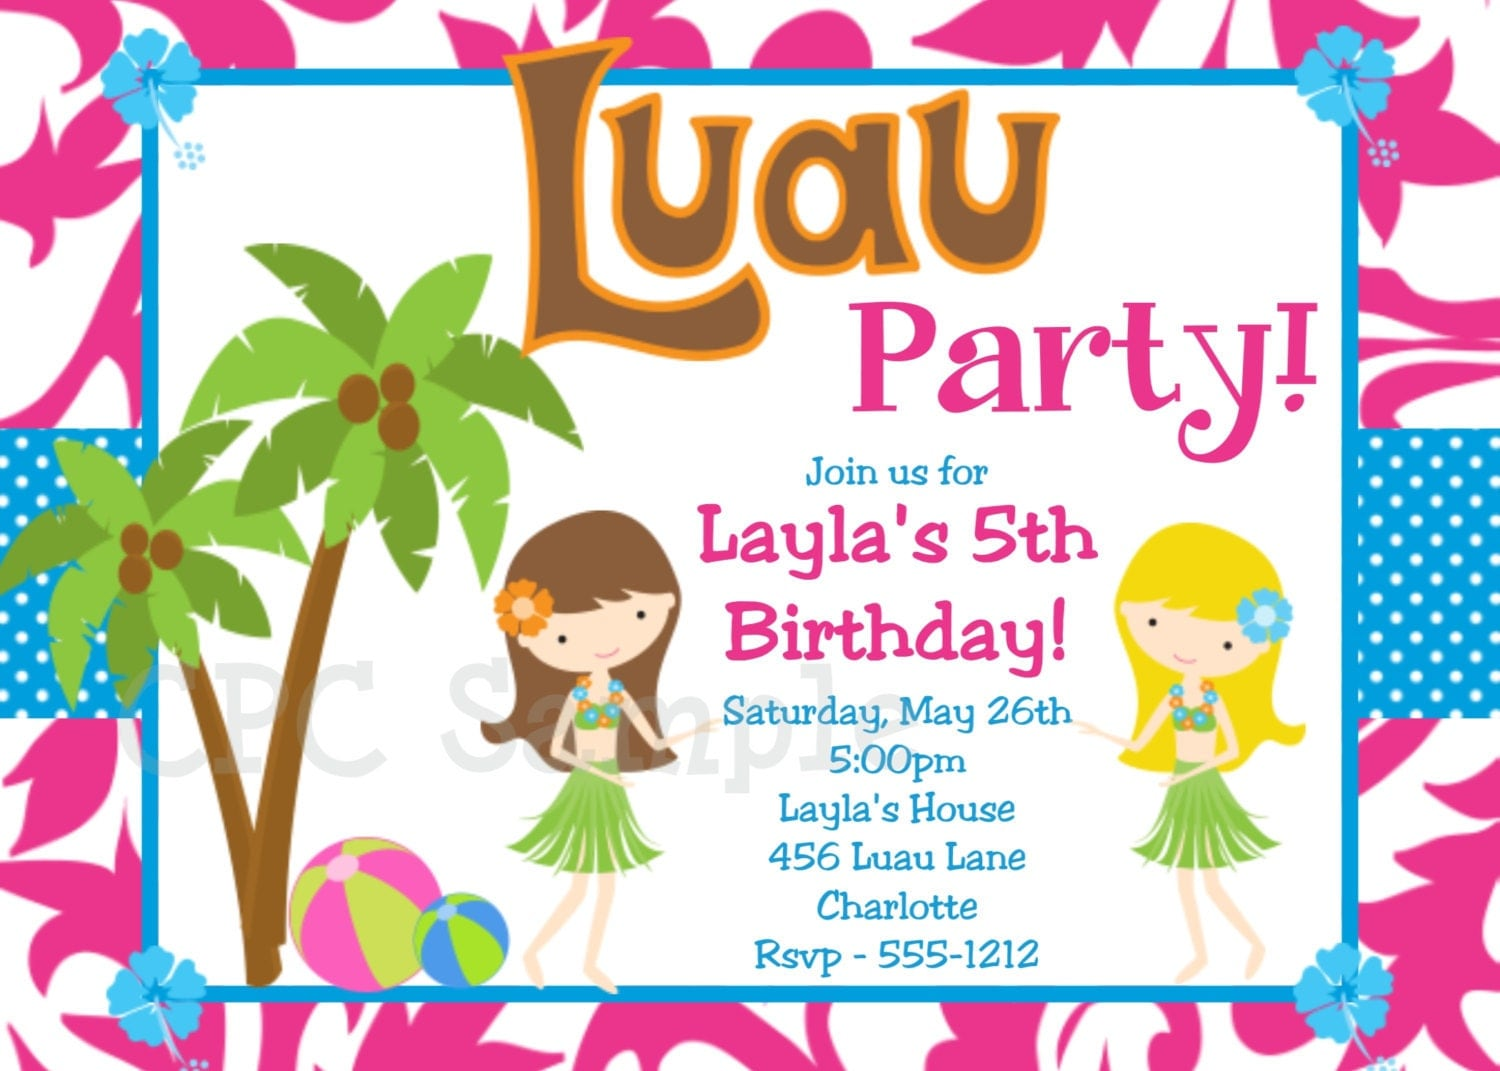 Luau Birthday Invitation Luau Party Invitations Printable or – Printed Birthday Invitations